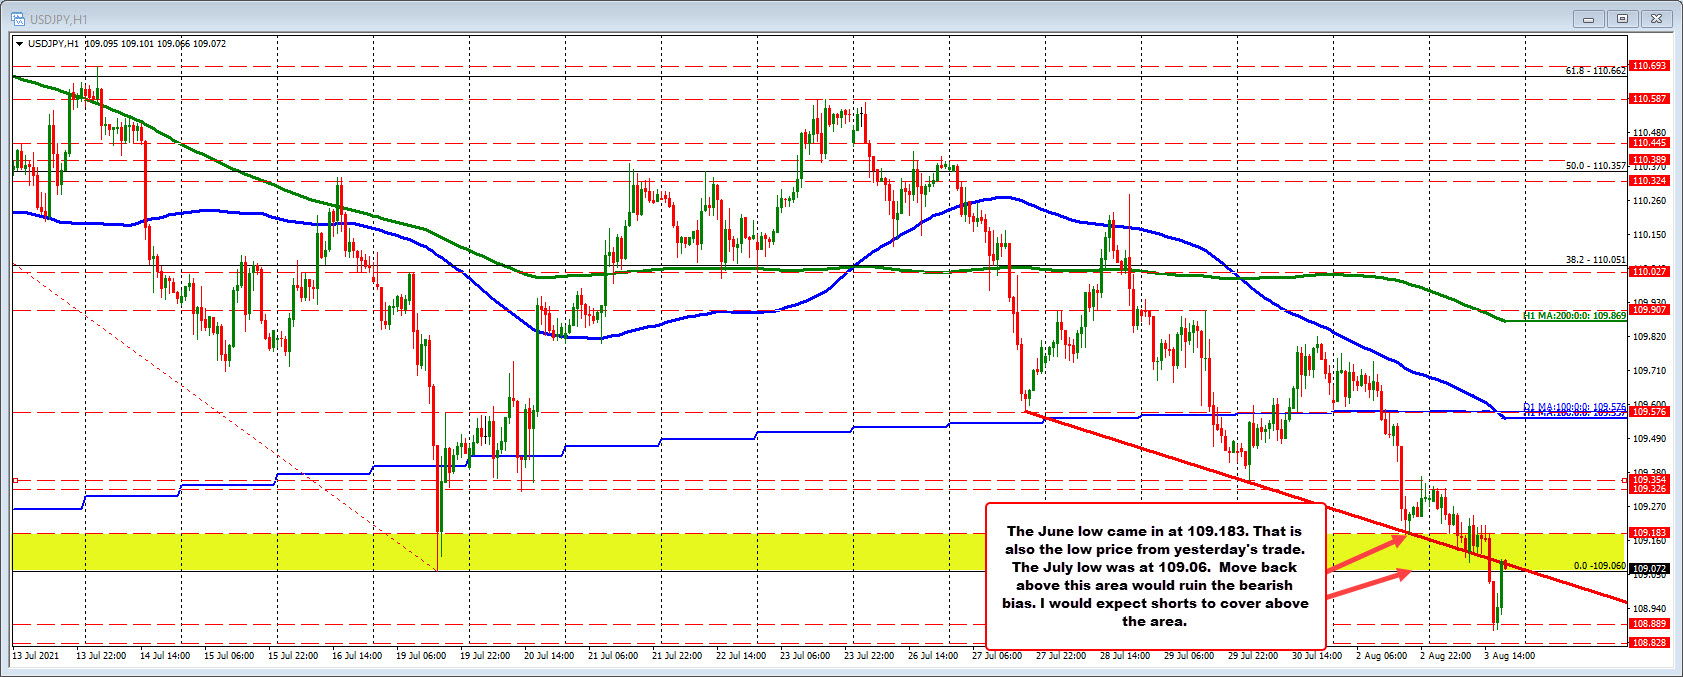 The June low at 109.183 remains a risk level for sellers